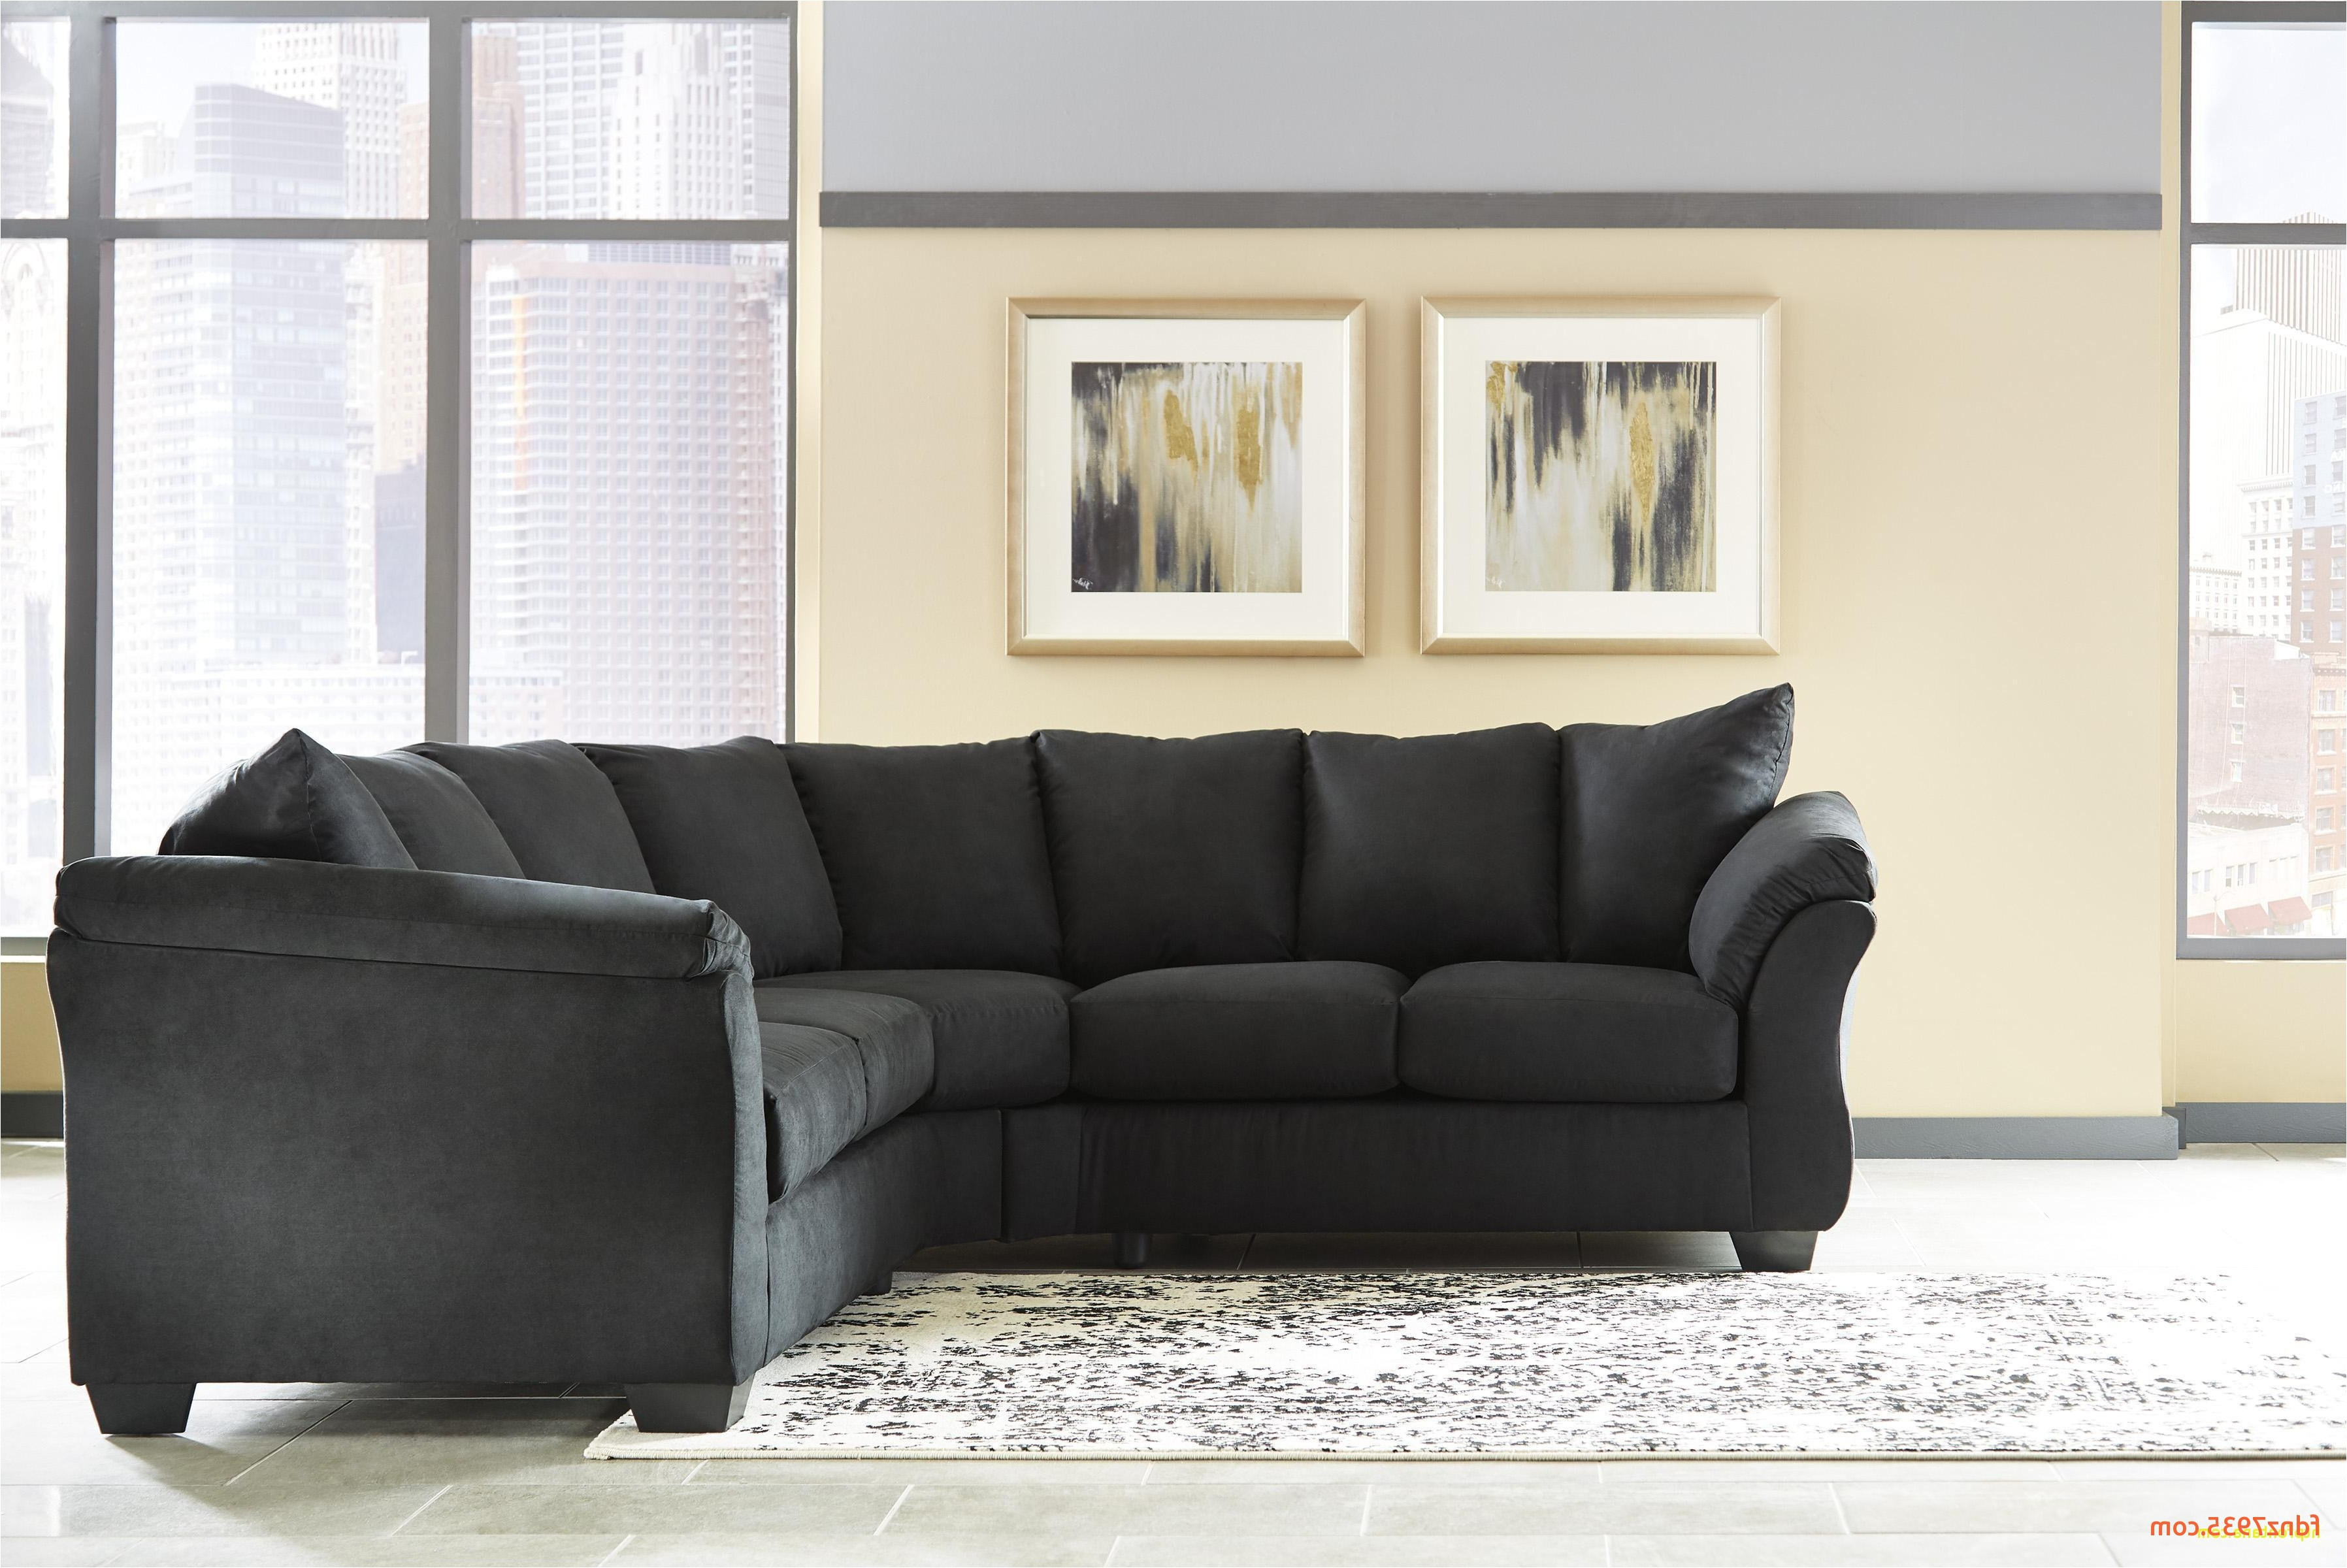 2019 Tenny Dark Grey 2 Piece Right Facing Chaise Sectionals With 2 Headrest Intended For Stylish Casual Classic Steel Piece Sectional Sofa Denali Rc (Gallery 5 of 20)